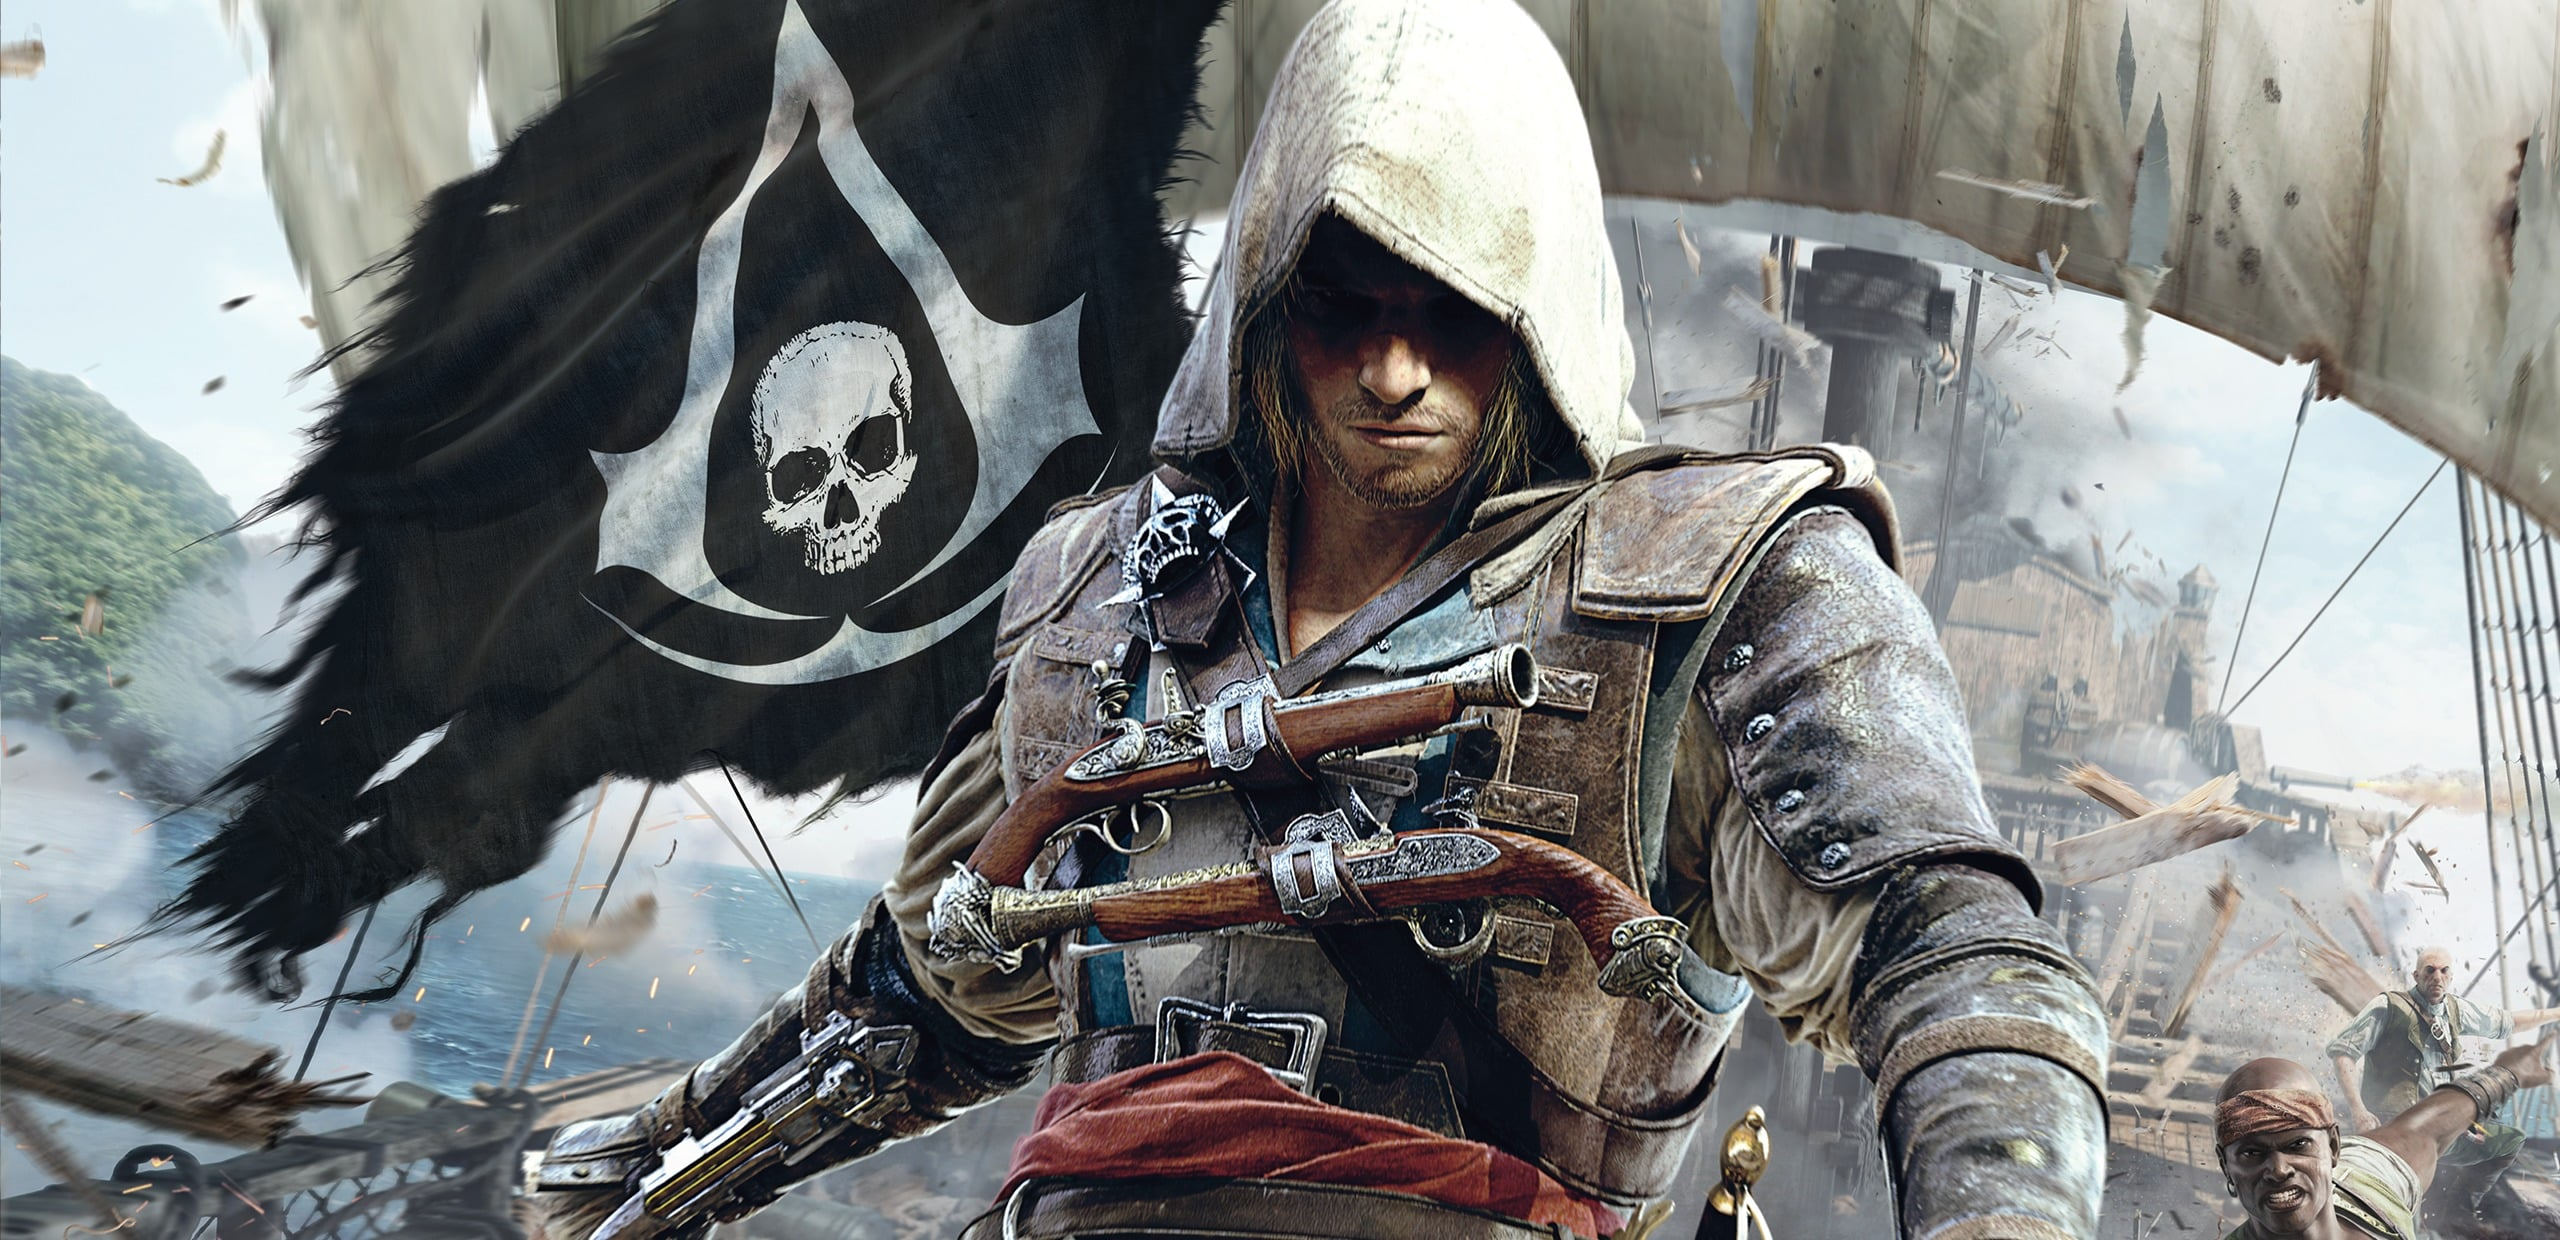 AT_ASSASINS_CREED_Black_Flag_detail_img_01